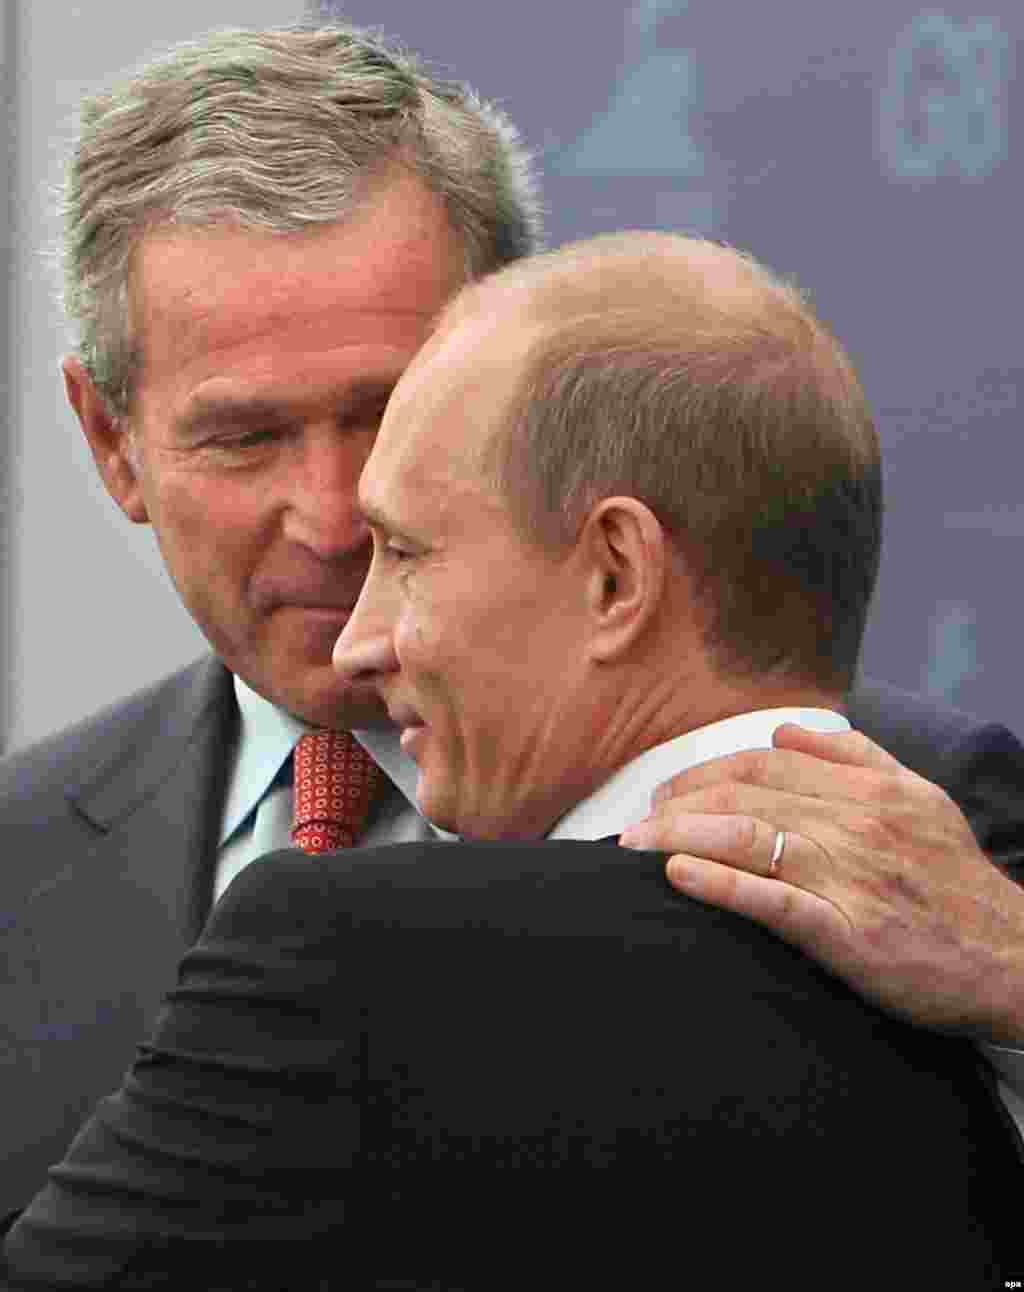 U.S. President George W. Bush (left) with his host, Russian President Vladimir Putin, at the G8 summit in St. Petersburg in July (epa) - U.S. President George W. Bush once had a famously warm relationship with Russian President Vladimir Putin. But Washington and Moscow were blunt in their comments in 2006 and the points of difference were substantive. However, the year ended on a positive note, with the United States lifting objections to Russia's entry to the World Trade Organization.